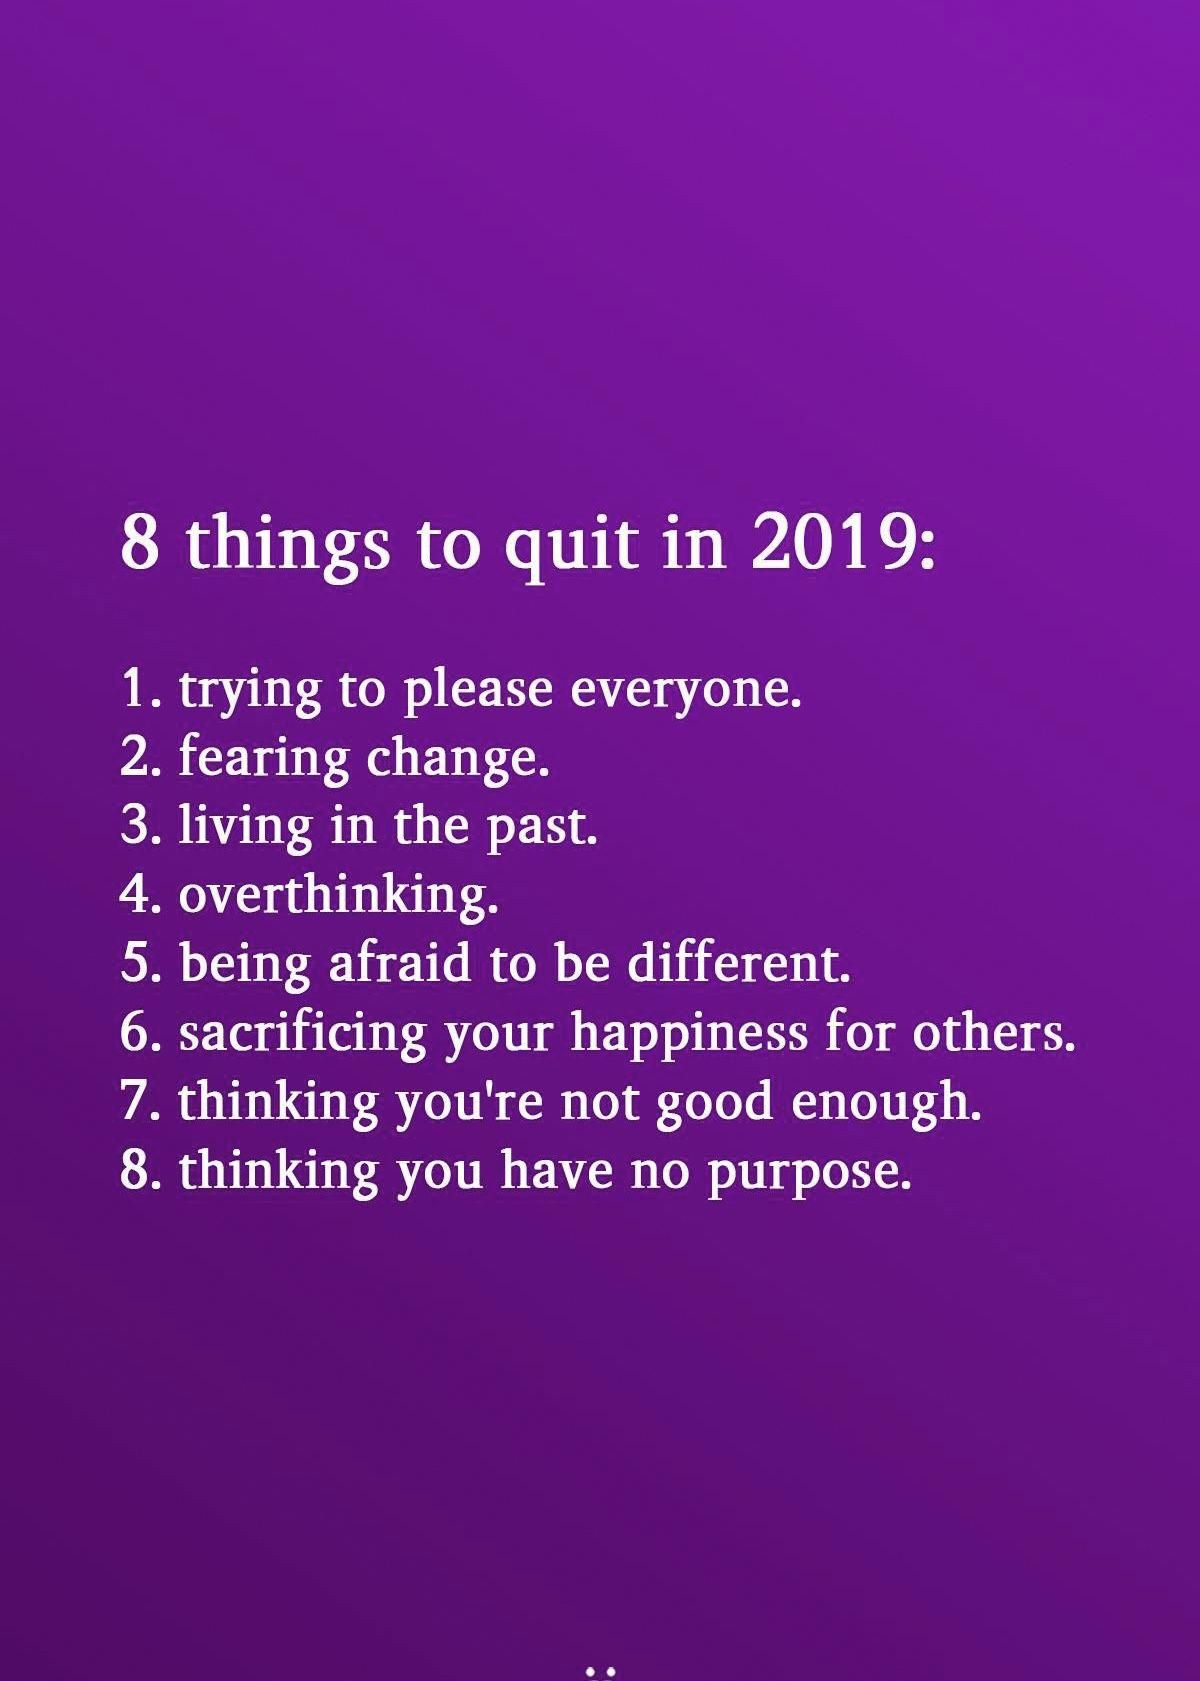 Inspiration Checklist Life Quotes Inspirational Quotes Quotes About New Year